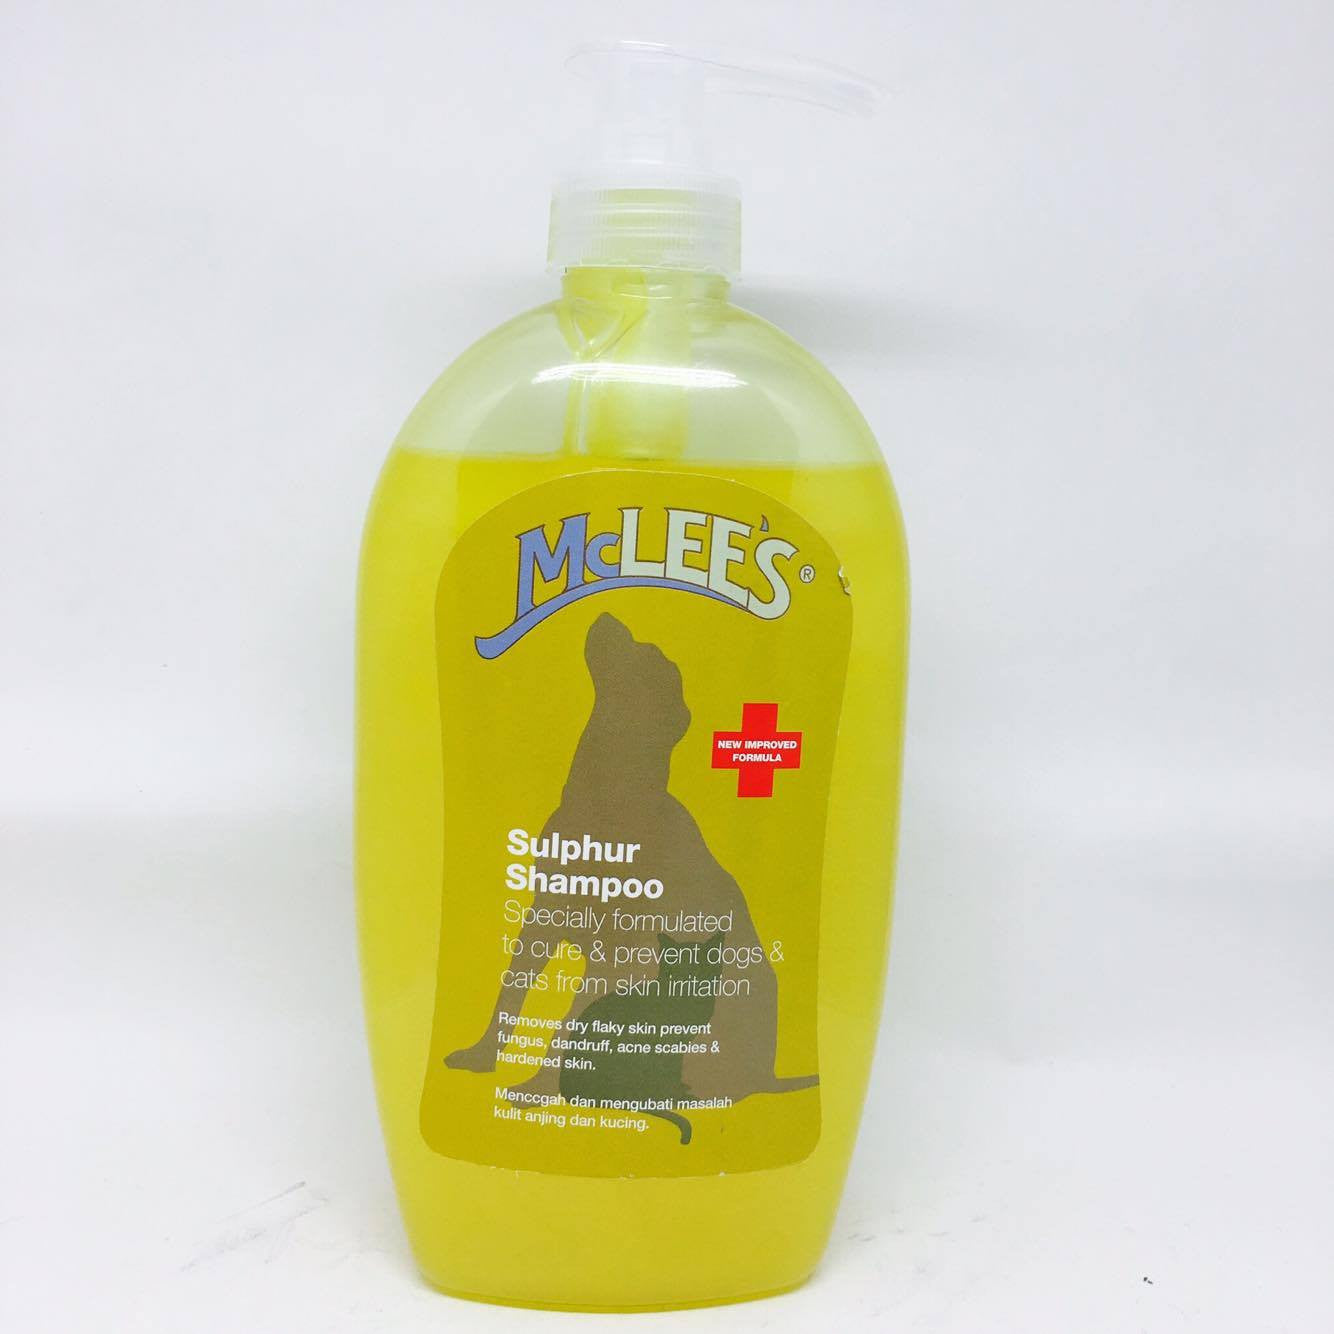 McLee's Sulphur Shampoo For Dog